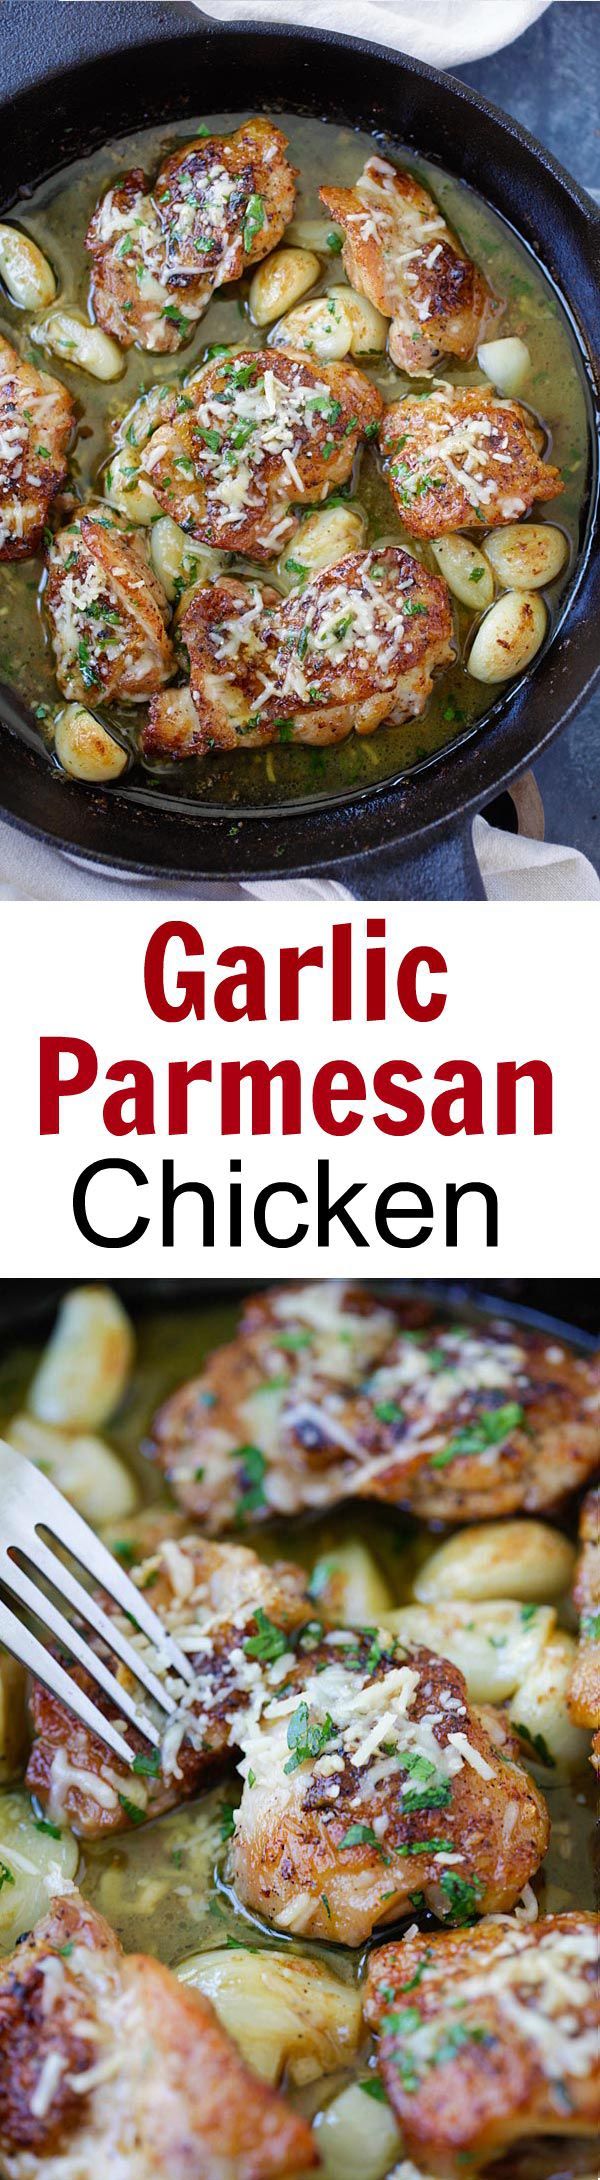 Buttery Garlic Parmesan Chicken – amazing skillet chicken with garlic and Parmesan cheese. Made with simple ingredients but SO good! | rasamalaysia.com